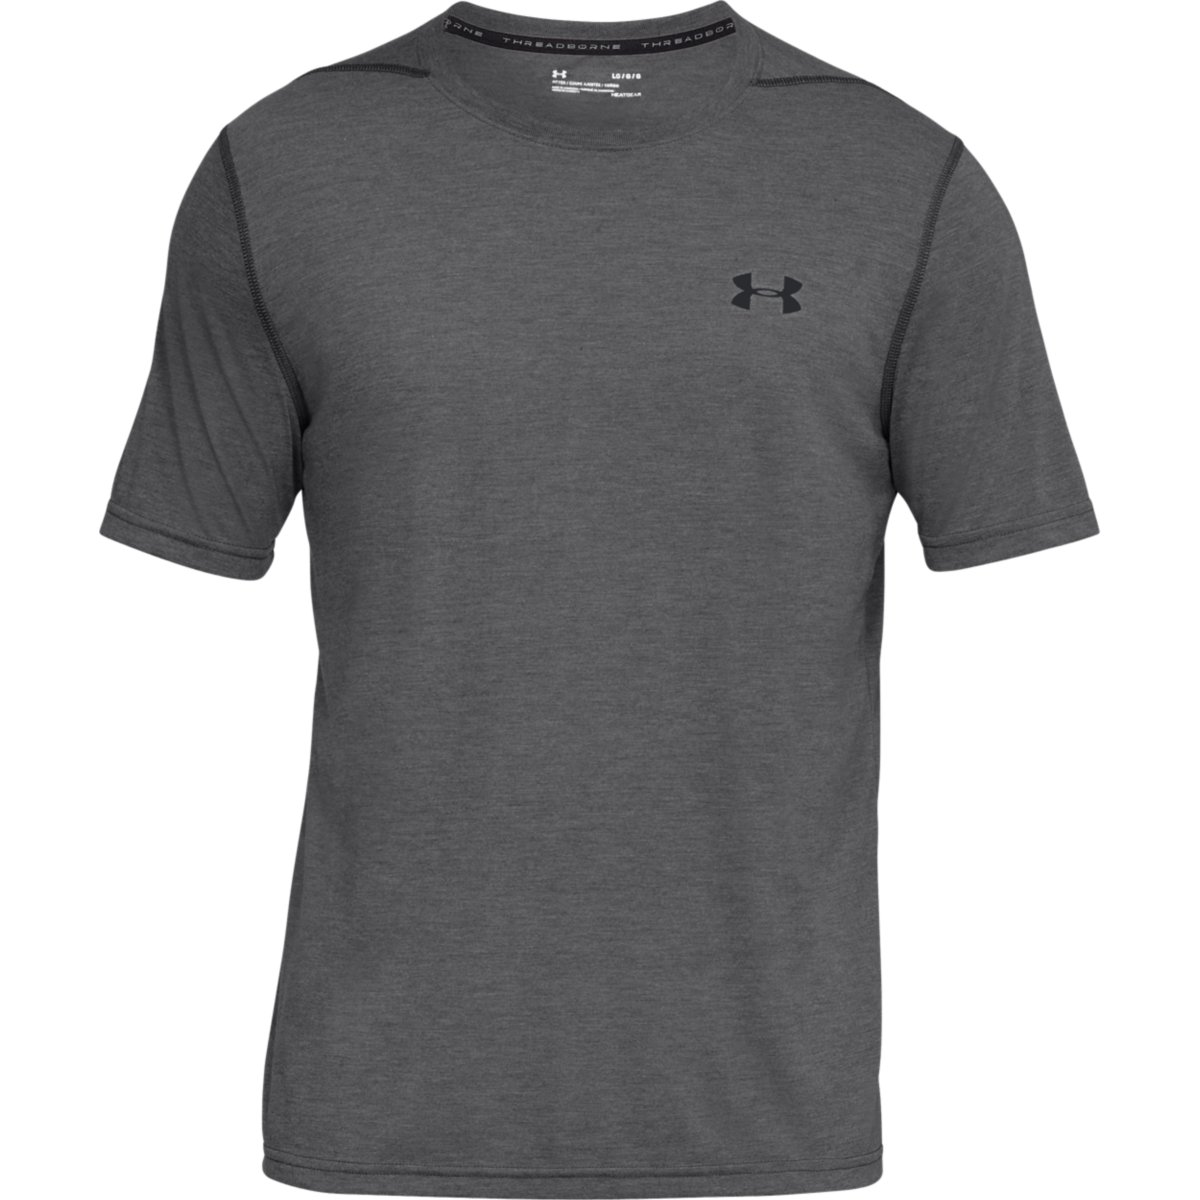 7670aae4d Wiggle | Under Armour Threadborne Fitted Short Sleeve Gym Tee | Short Sleeve  Running Tops